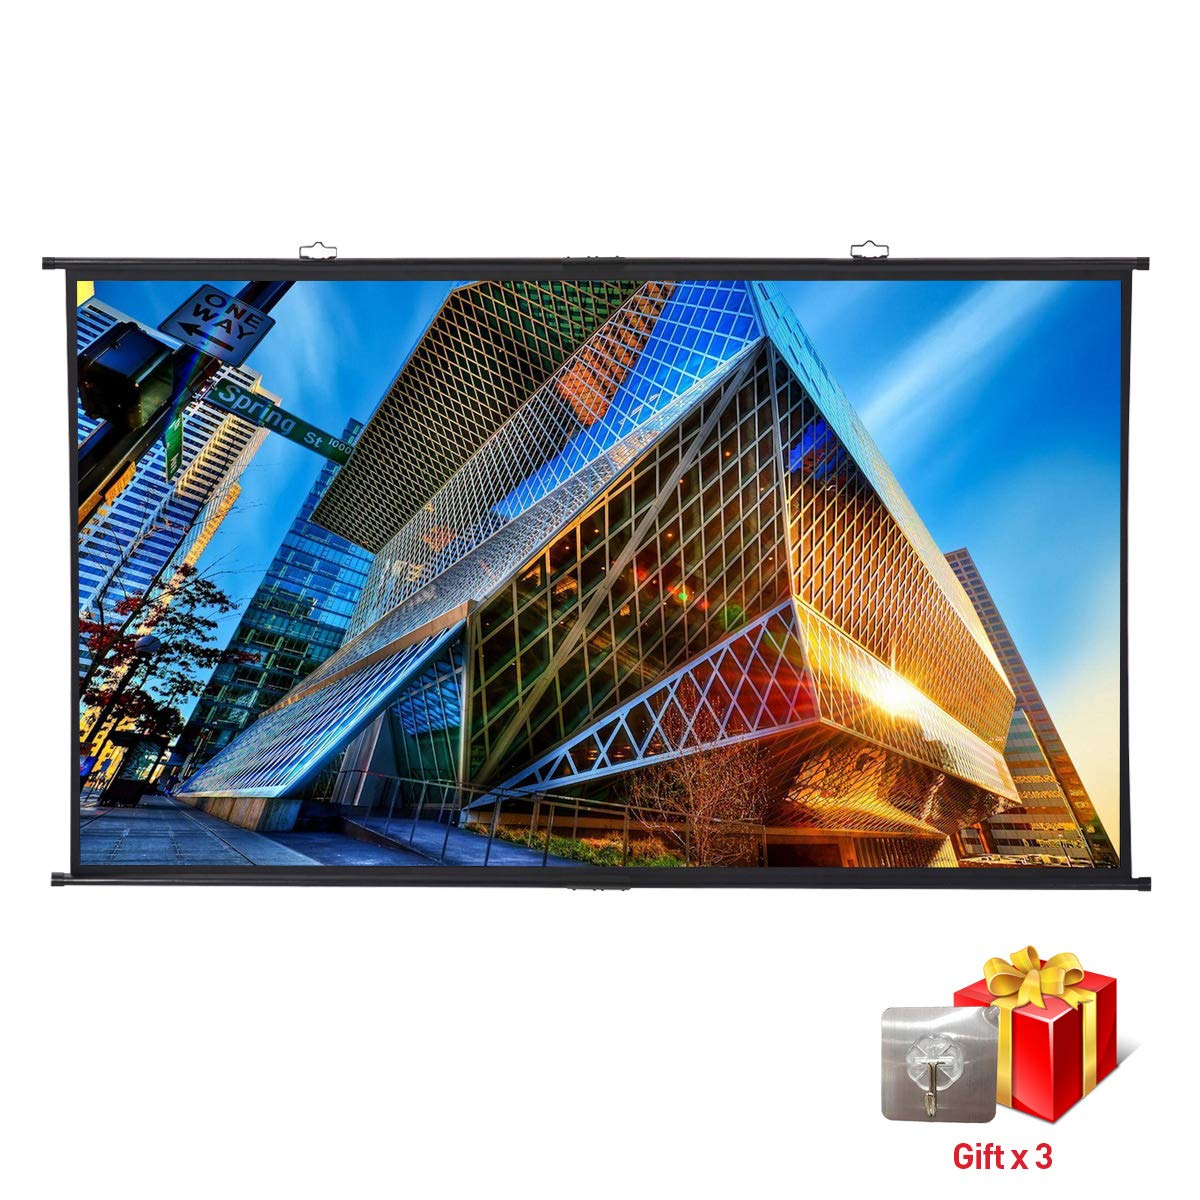 Projector Screen, Excelvan Manual Portable Diagonal 16:9 Wrinkle-Free 4K HD Home Cinema Video Screen, Easy Install on Wall Mount, Strong Sticky Hook Included (120 inch)